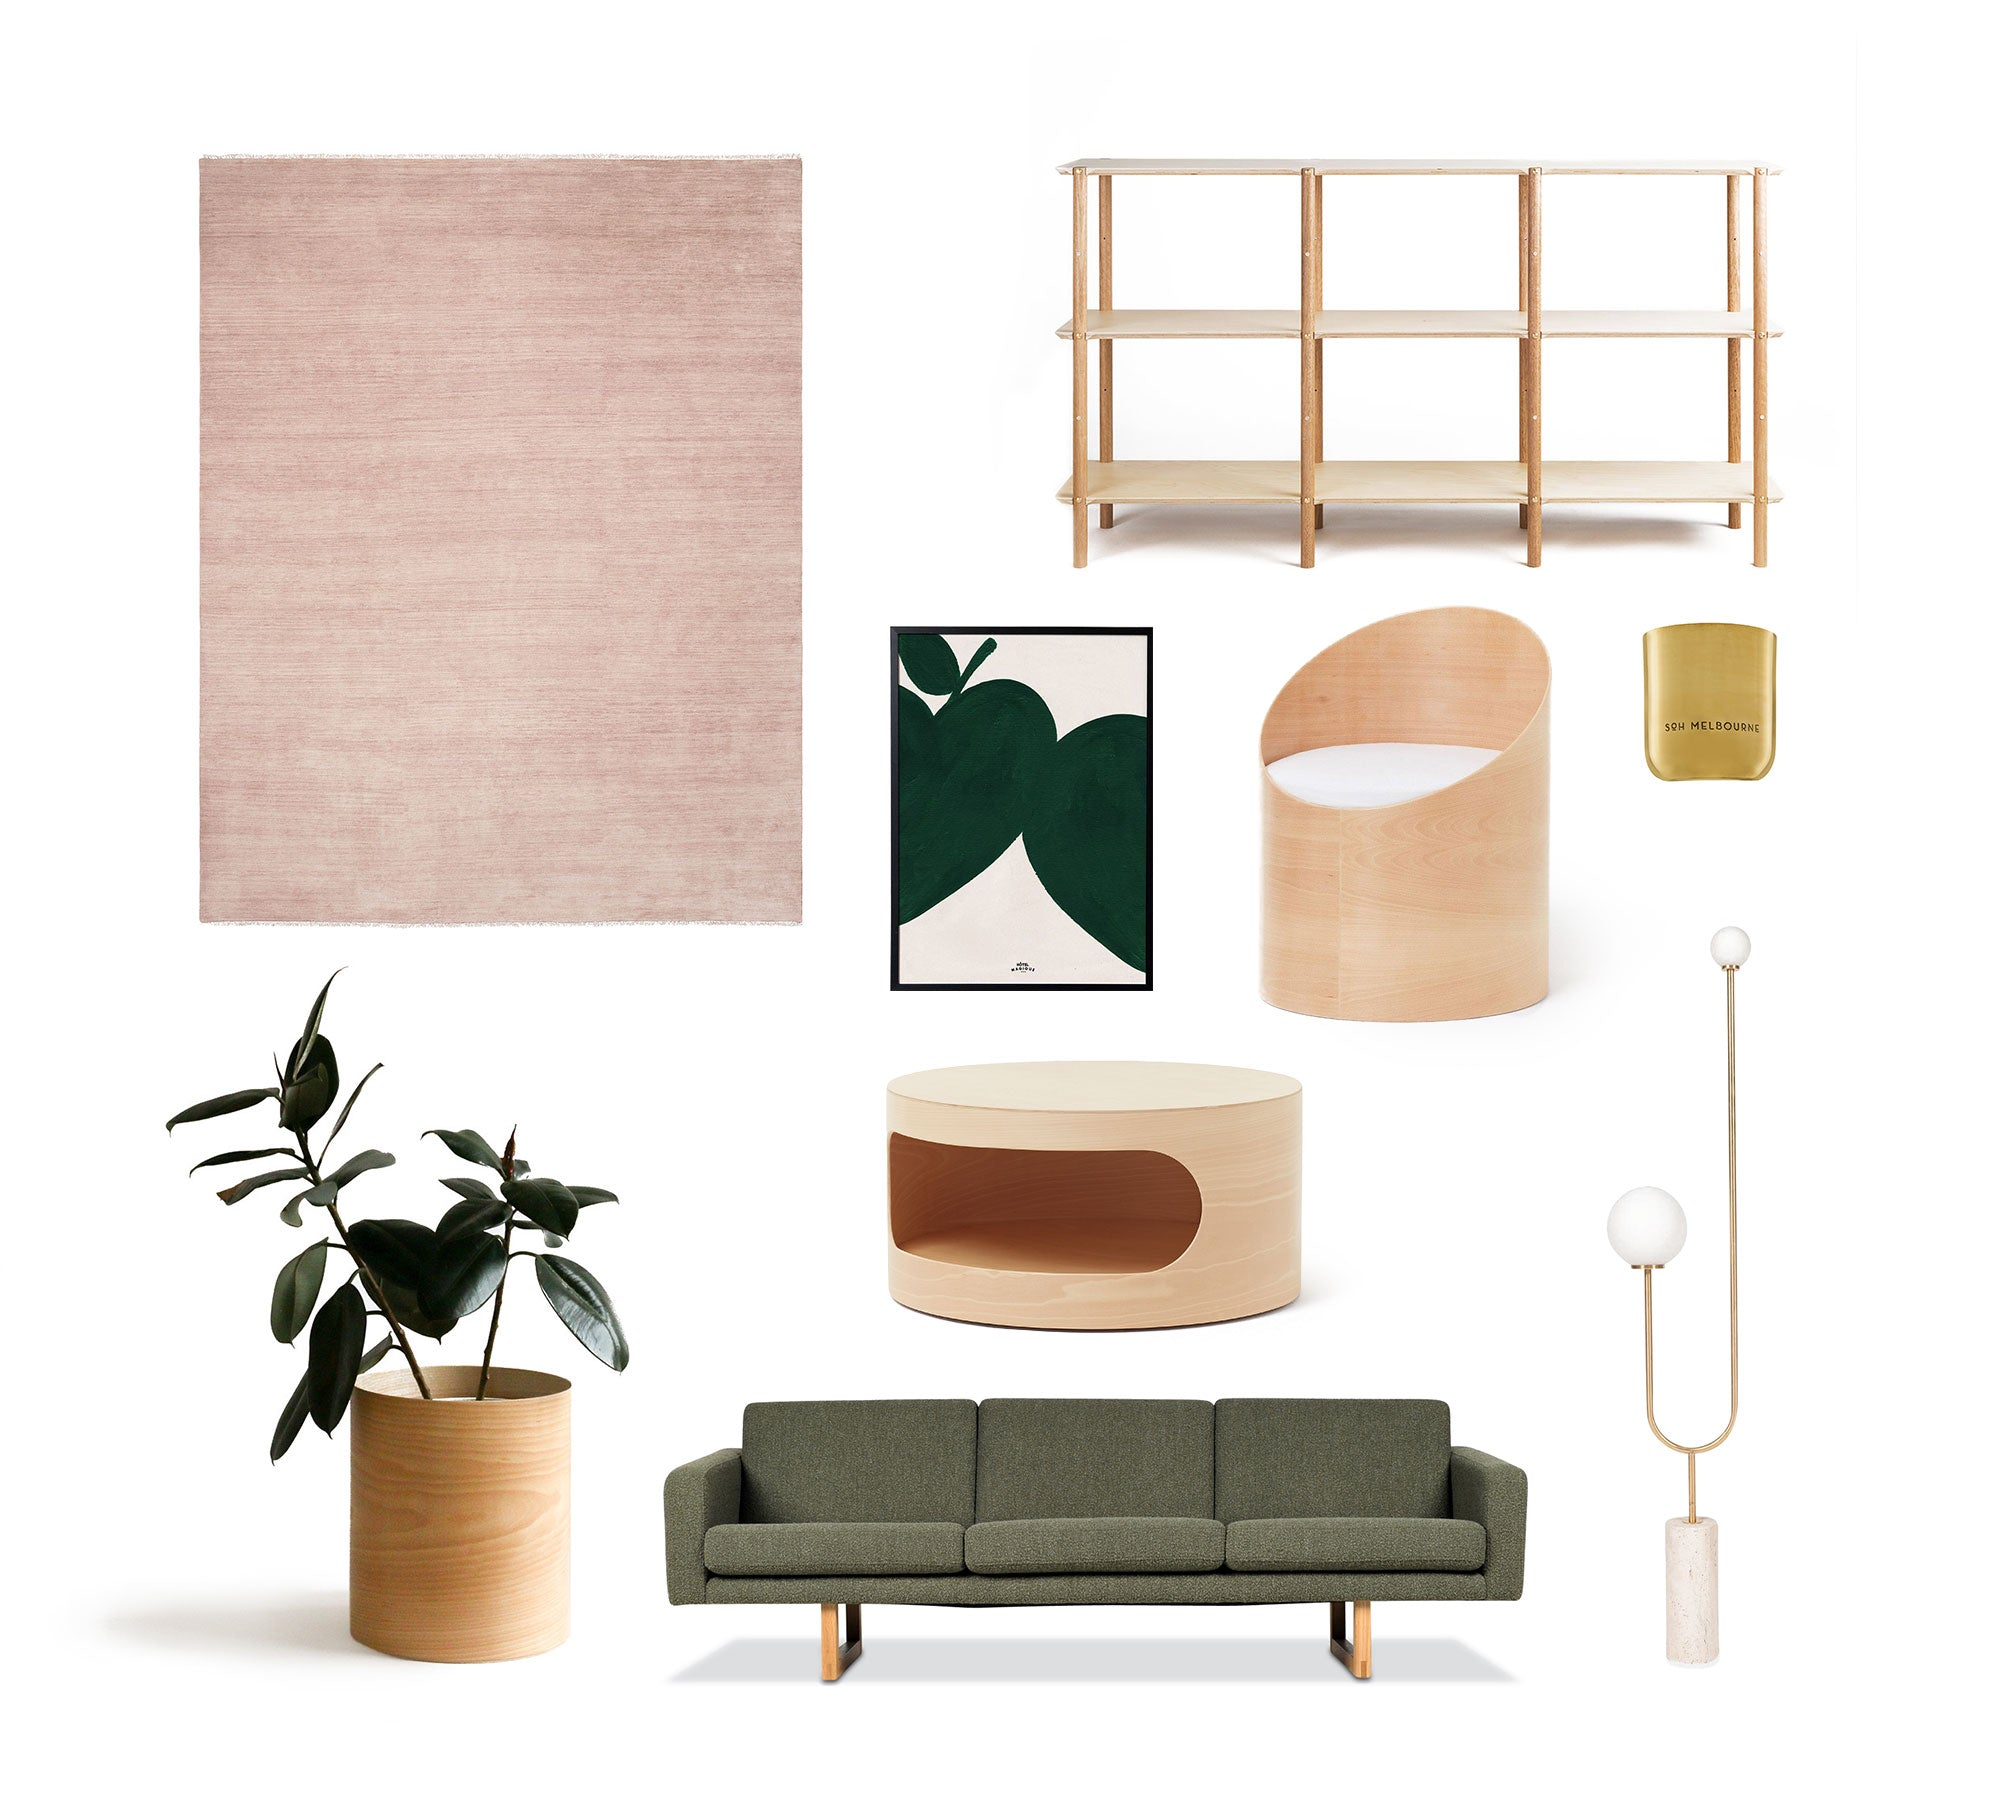 Modern Times and Armadillo & Co in a Luxury Interior Mood Board